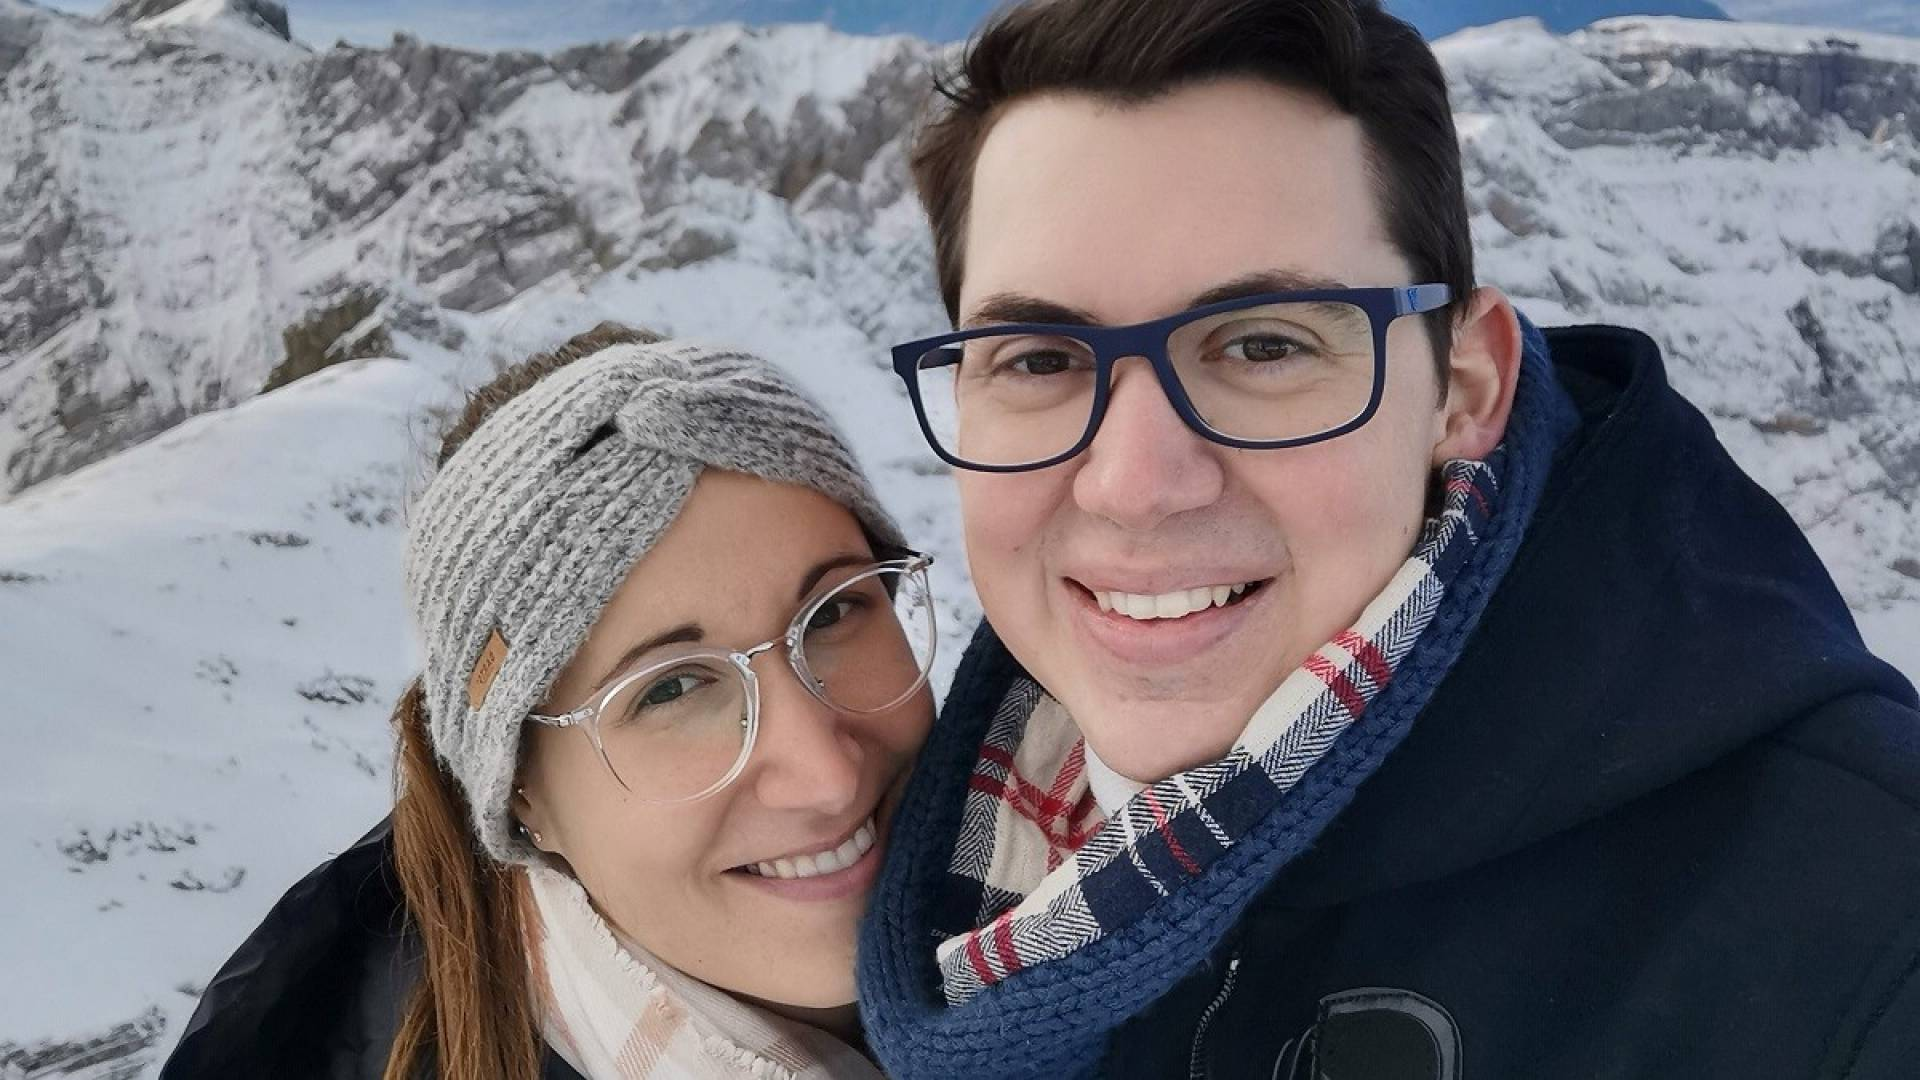 The couple at the Säntis mountain in Switzerland